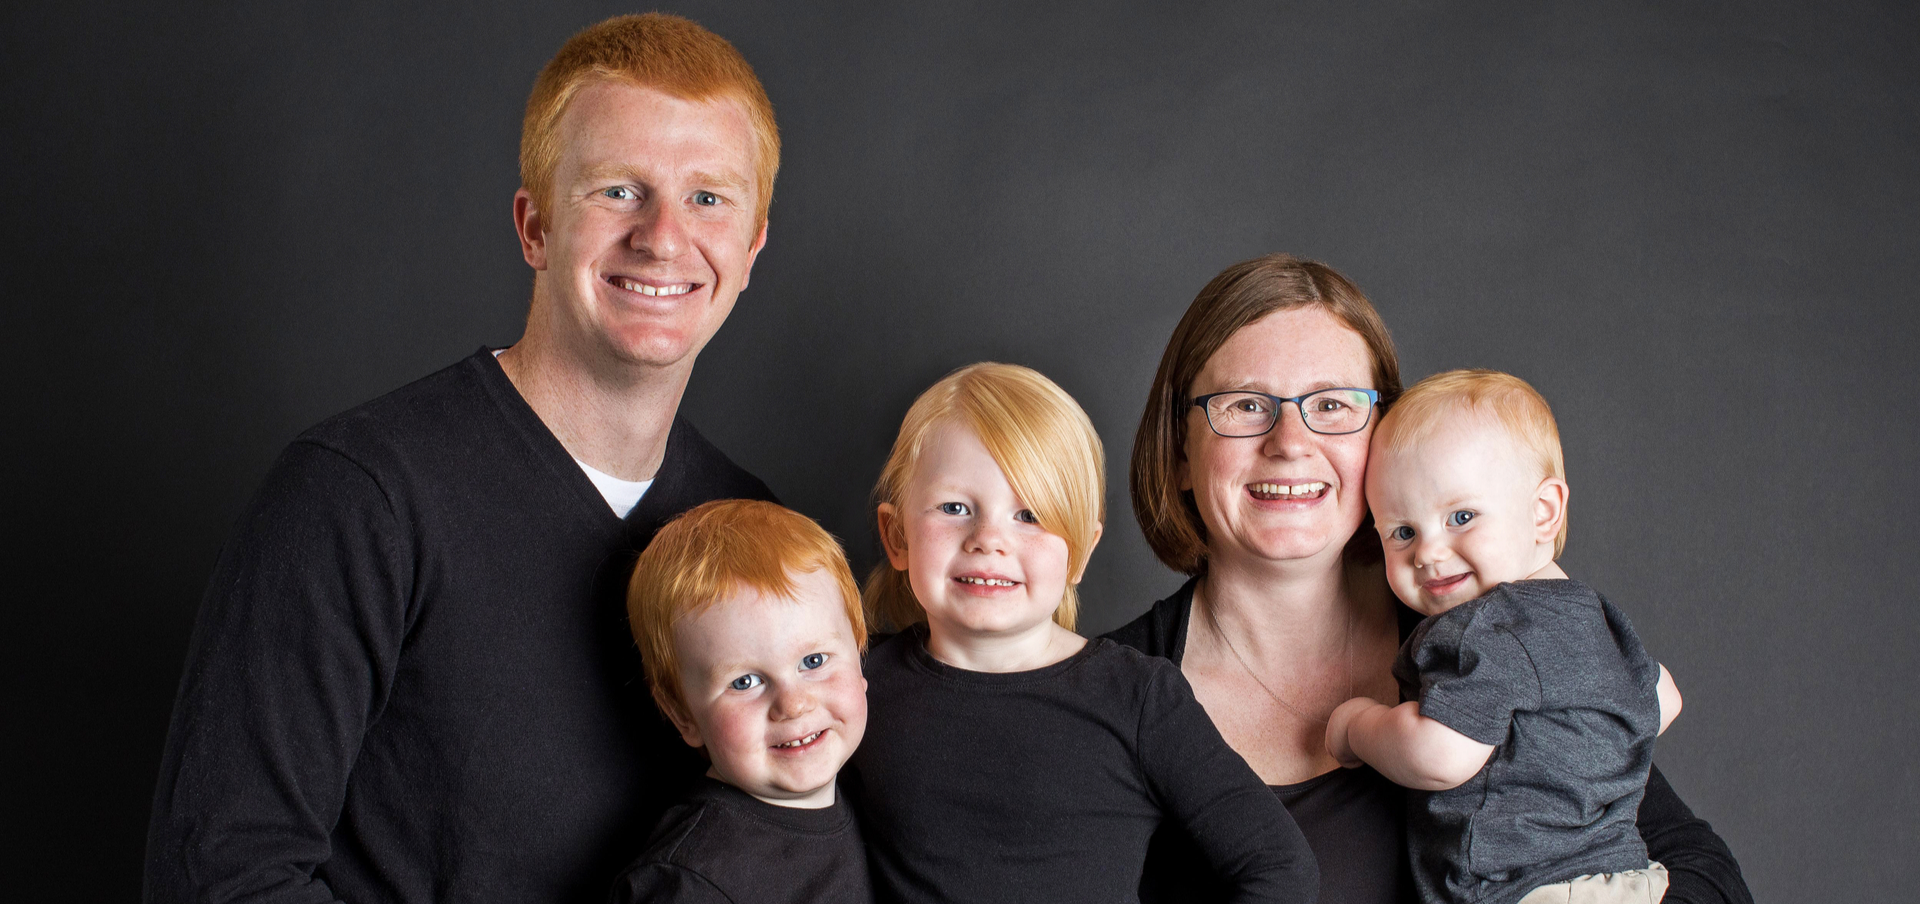 FAMILIES - Bespoke, styled portrait sessions that are uniquely you